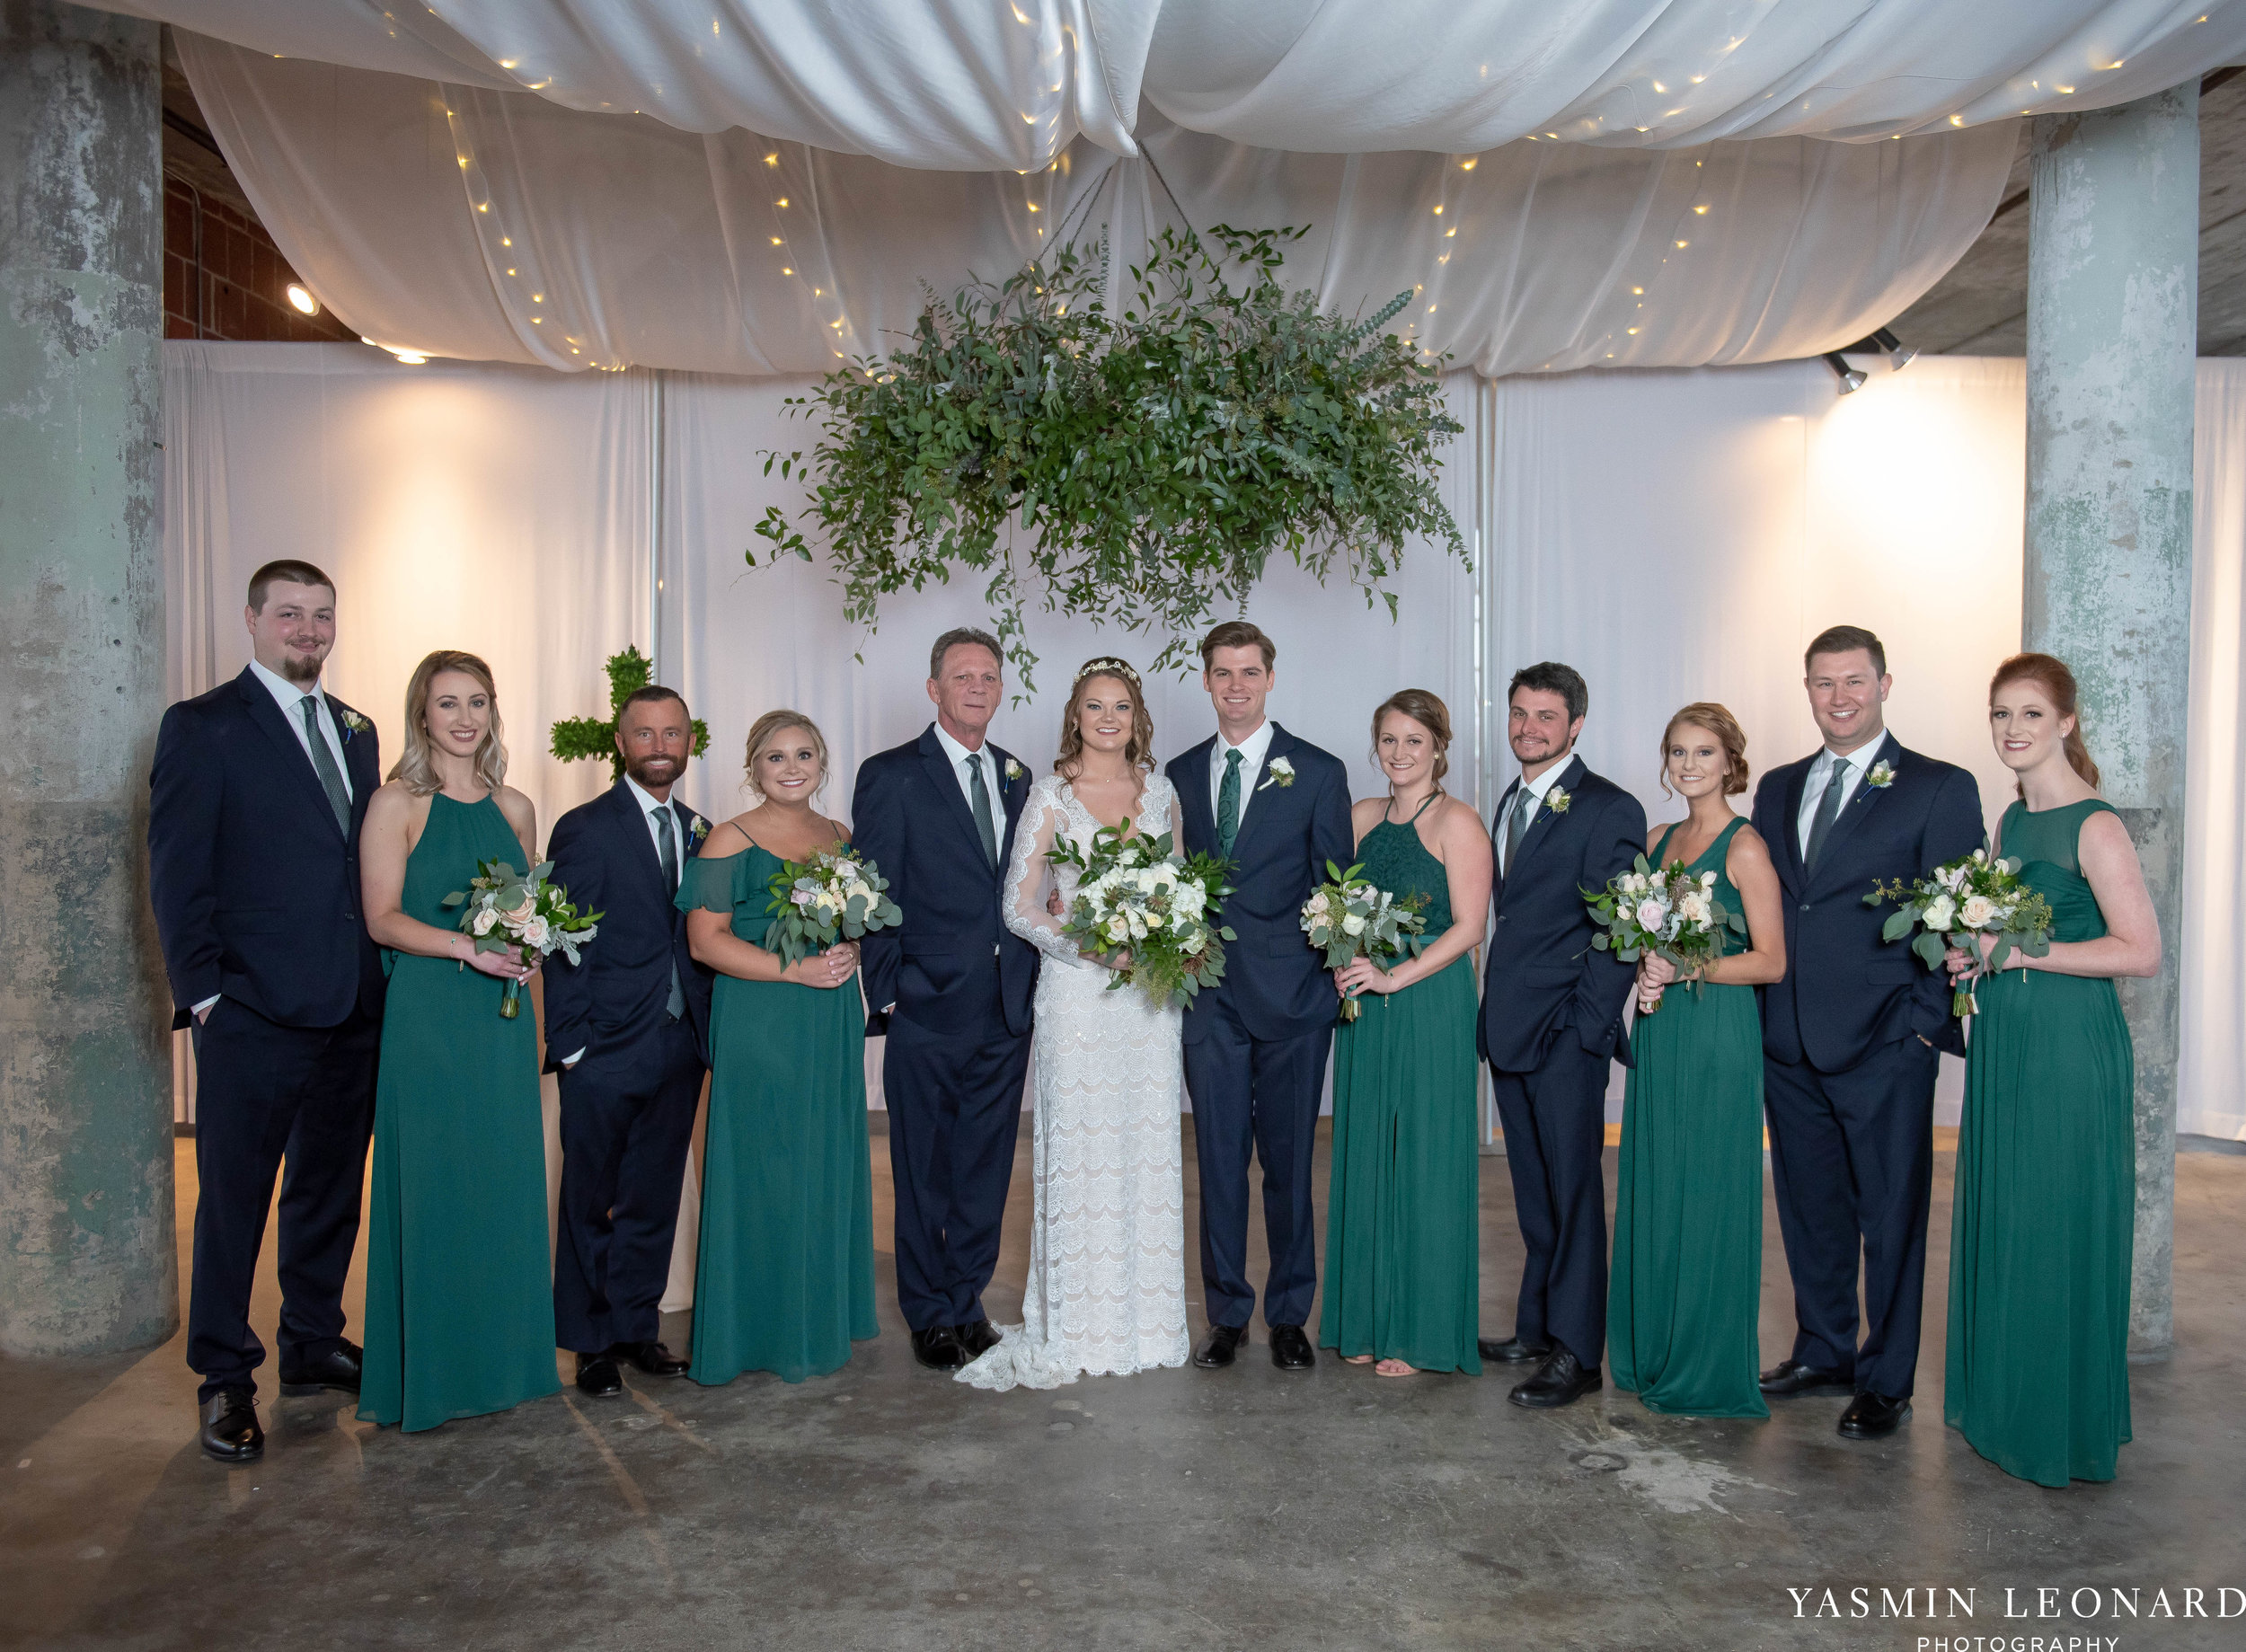 The Lofts at Union Square - Unions - High Point Weddings - NC Weddings - NC Wedding Photographer - Yasmin Leonard Photography - Just Priceless - Green Pink and Gold Wedding - Elegant Wedding-29.jpg